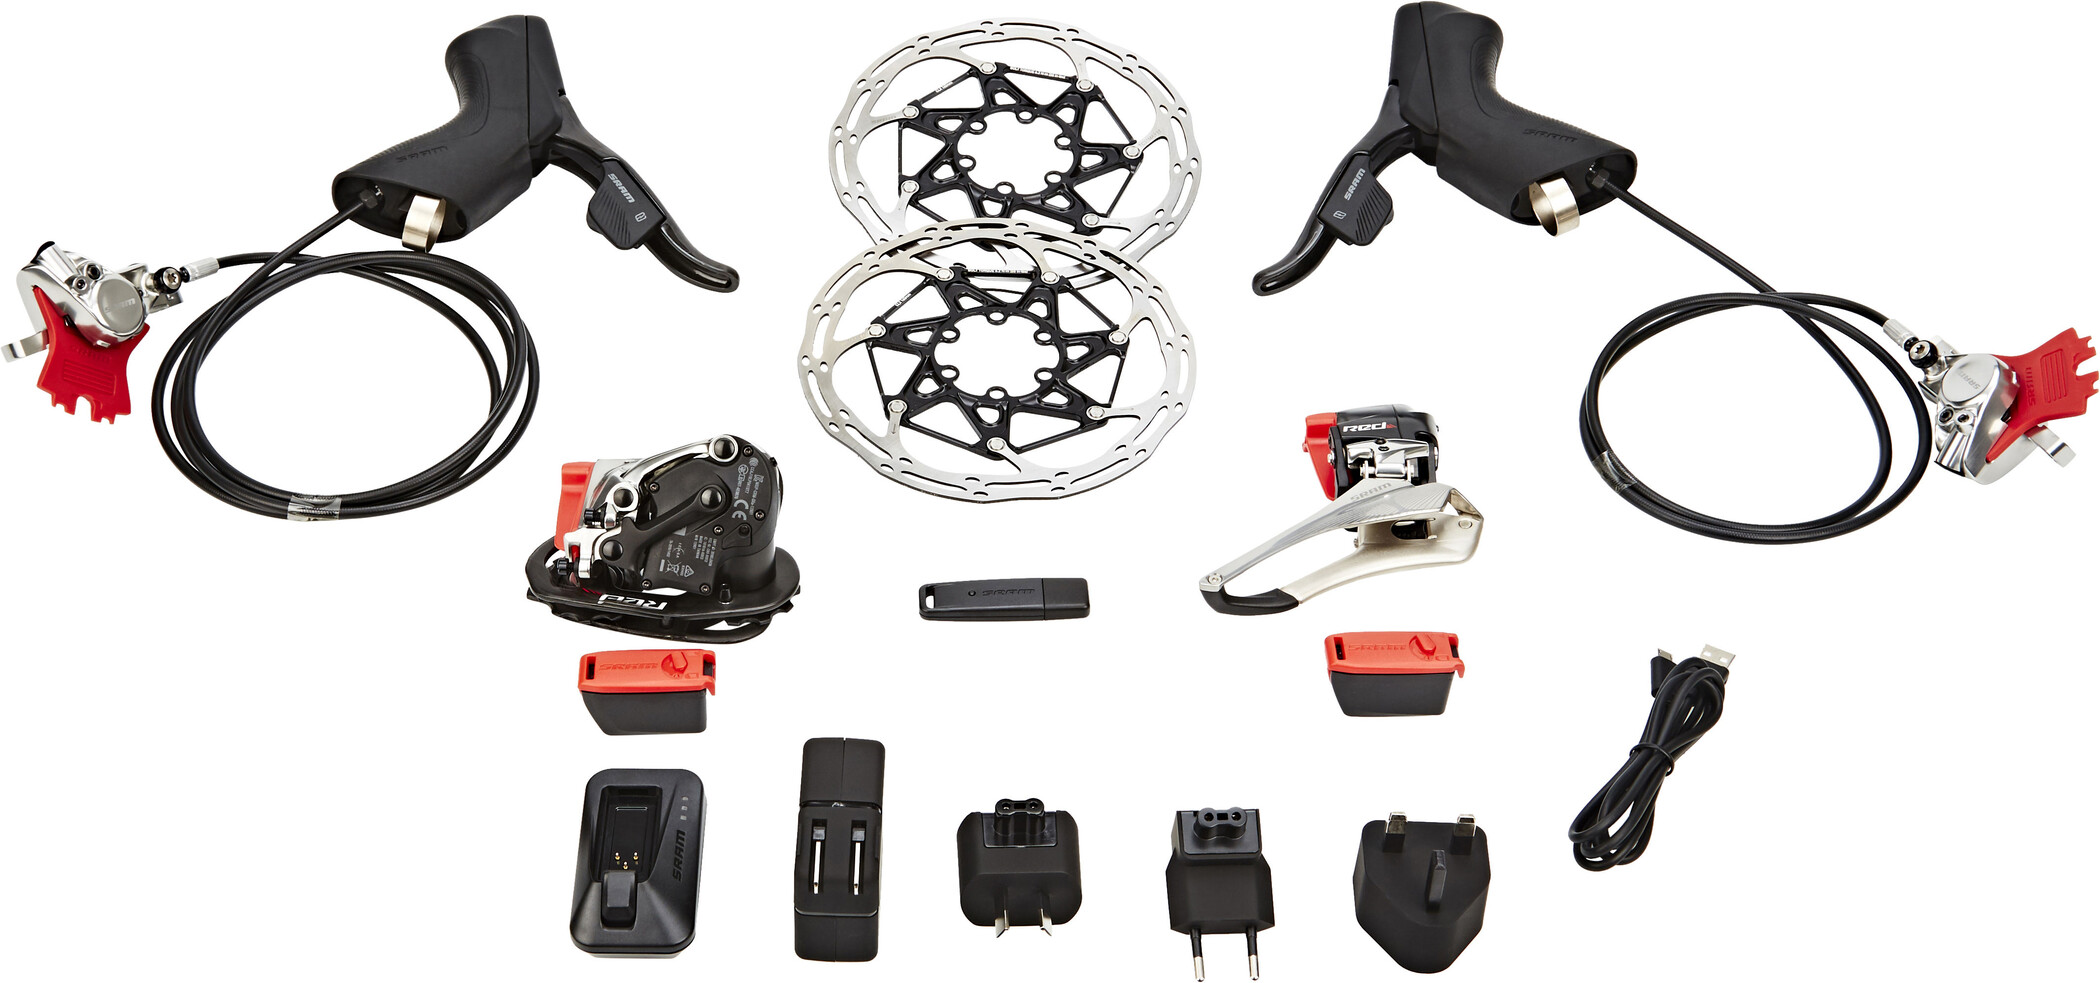 SRAM Red eTap HRD Upgrade Kit 2x11 Postmount | Computer Battery and Charger